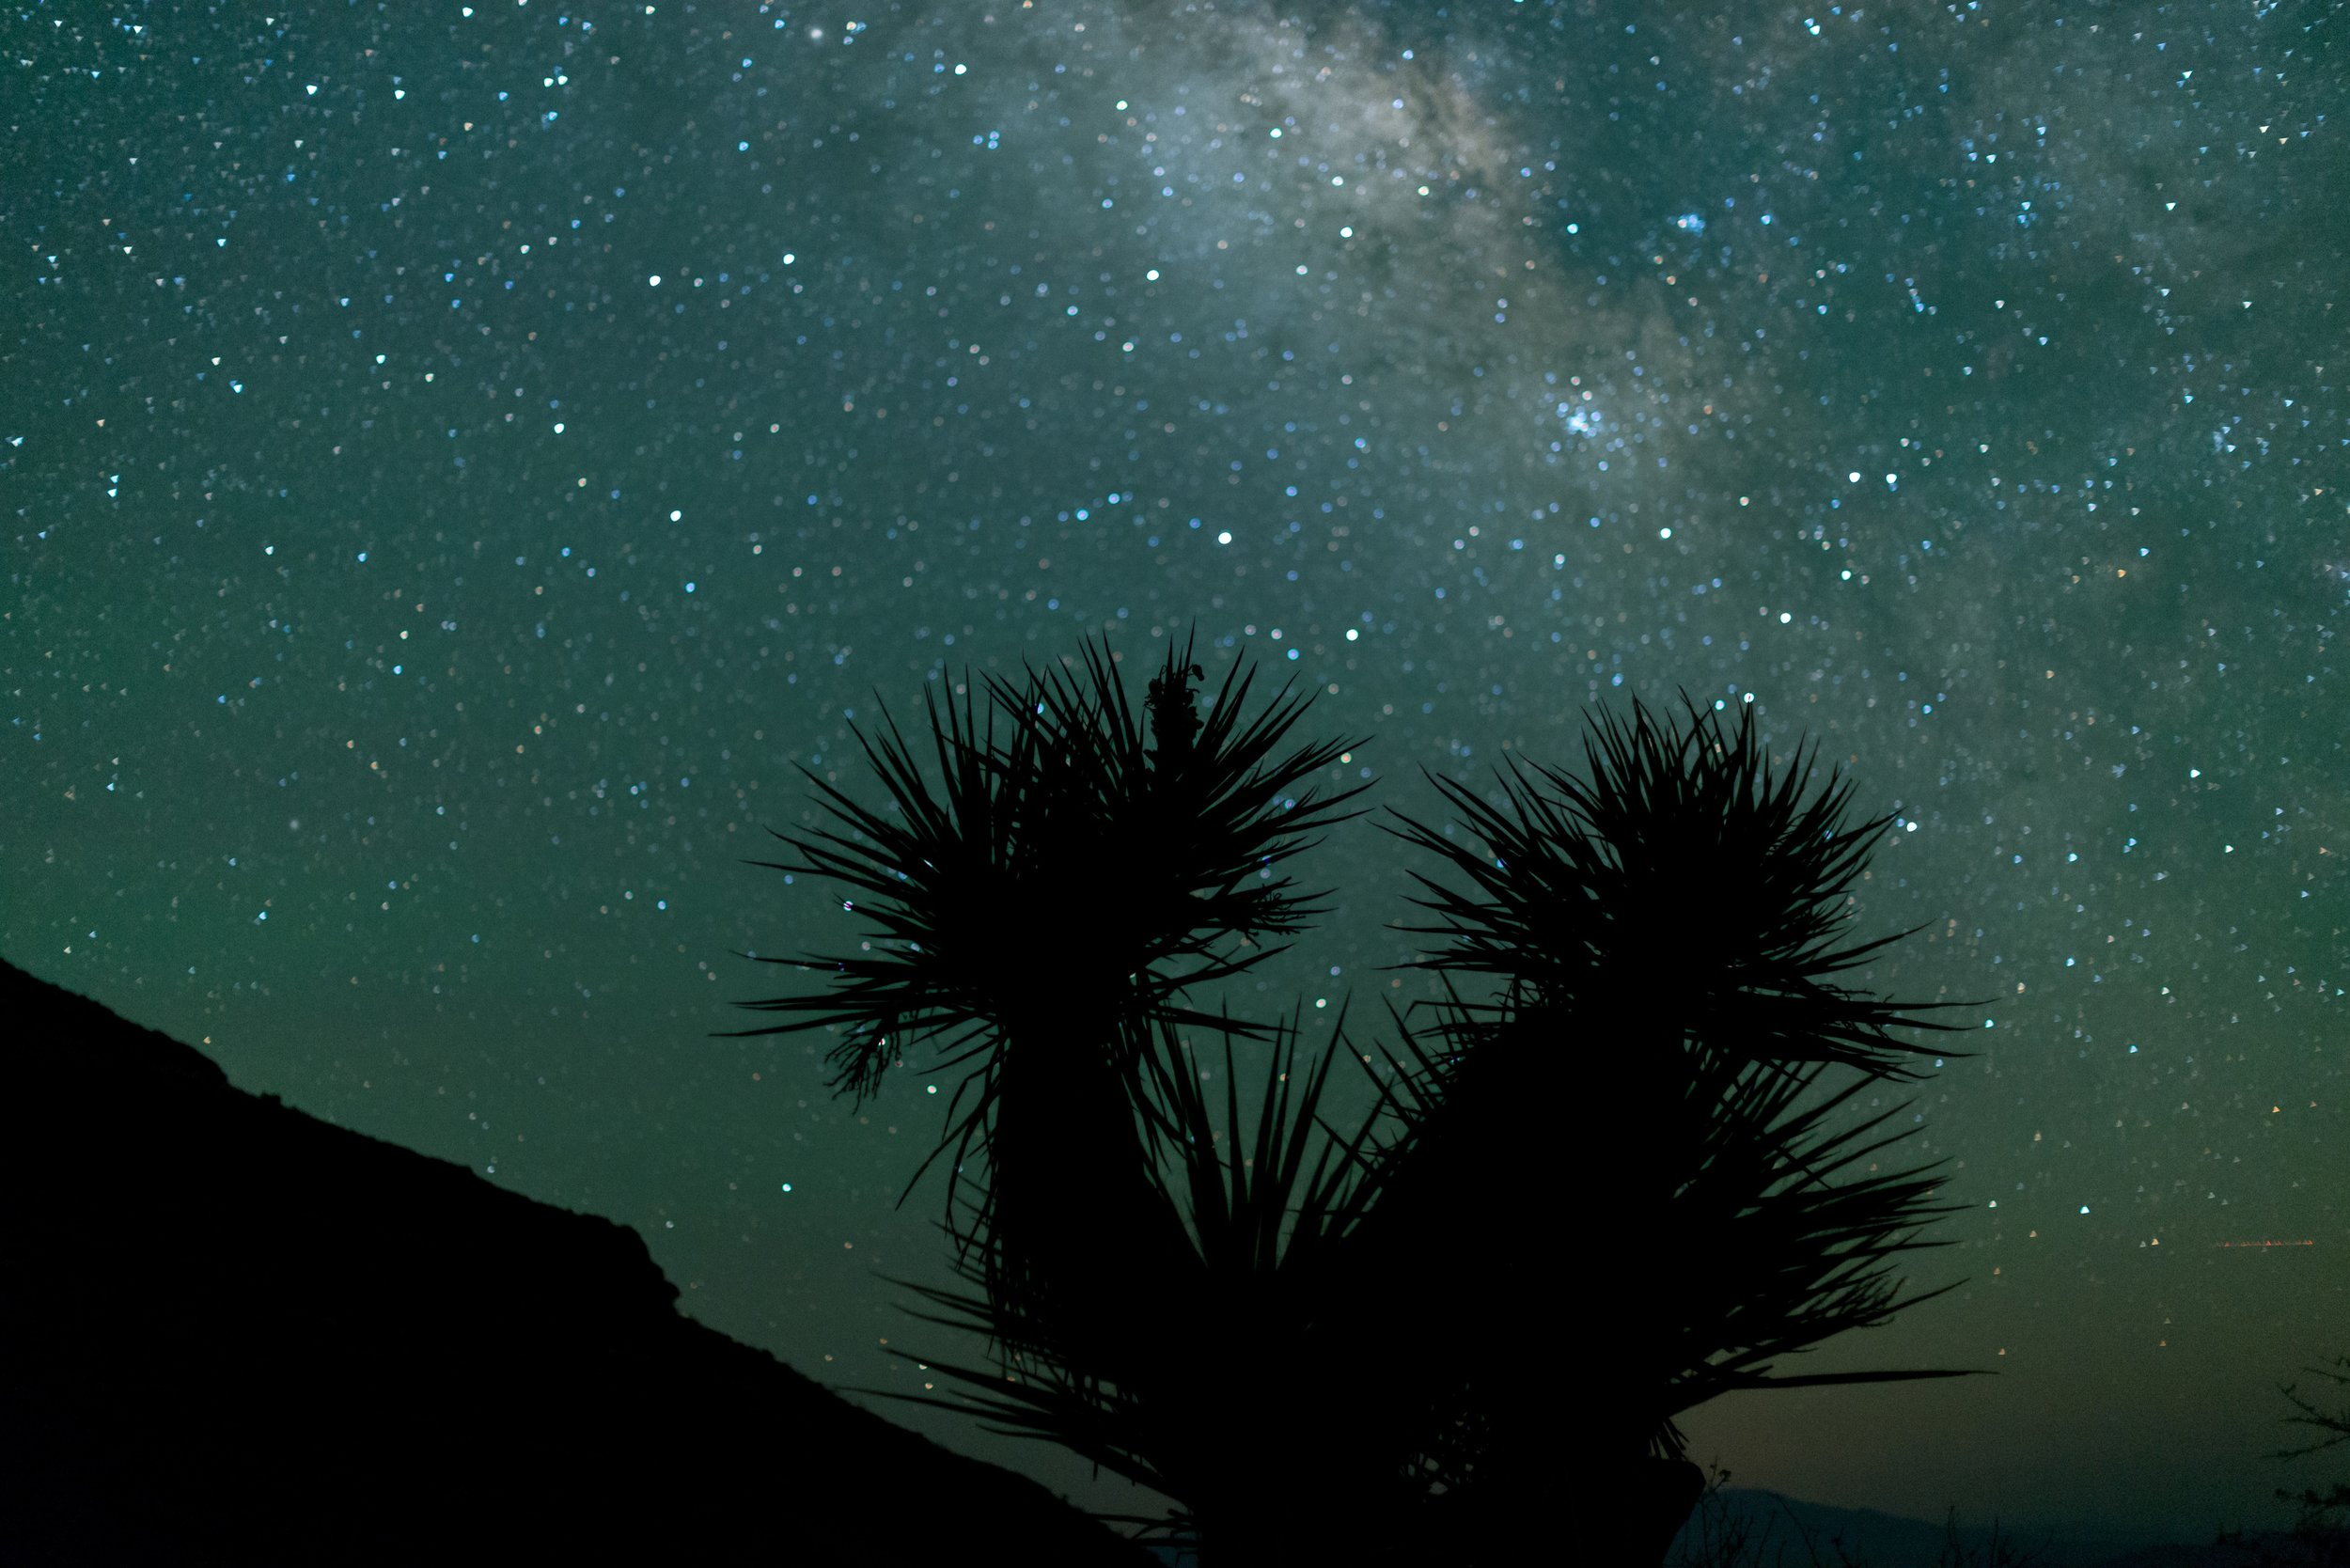 Silhouette of a Mojave yucca against the Milky Way.